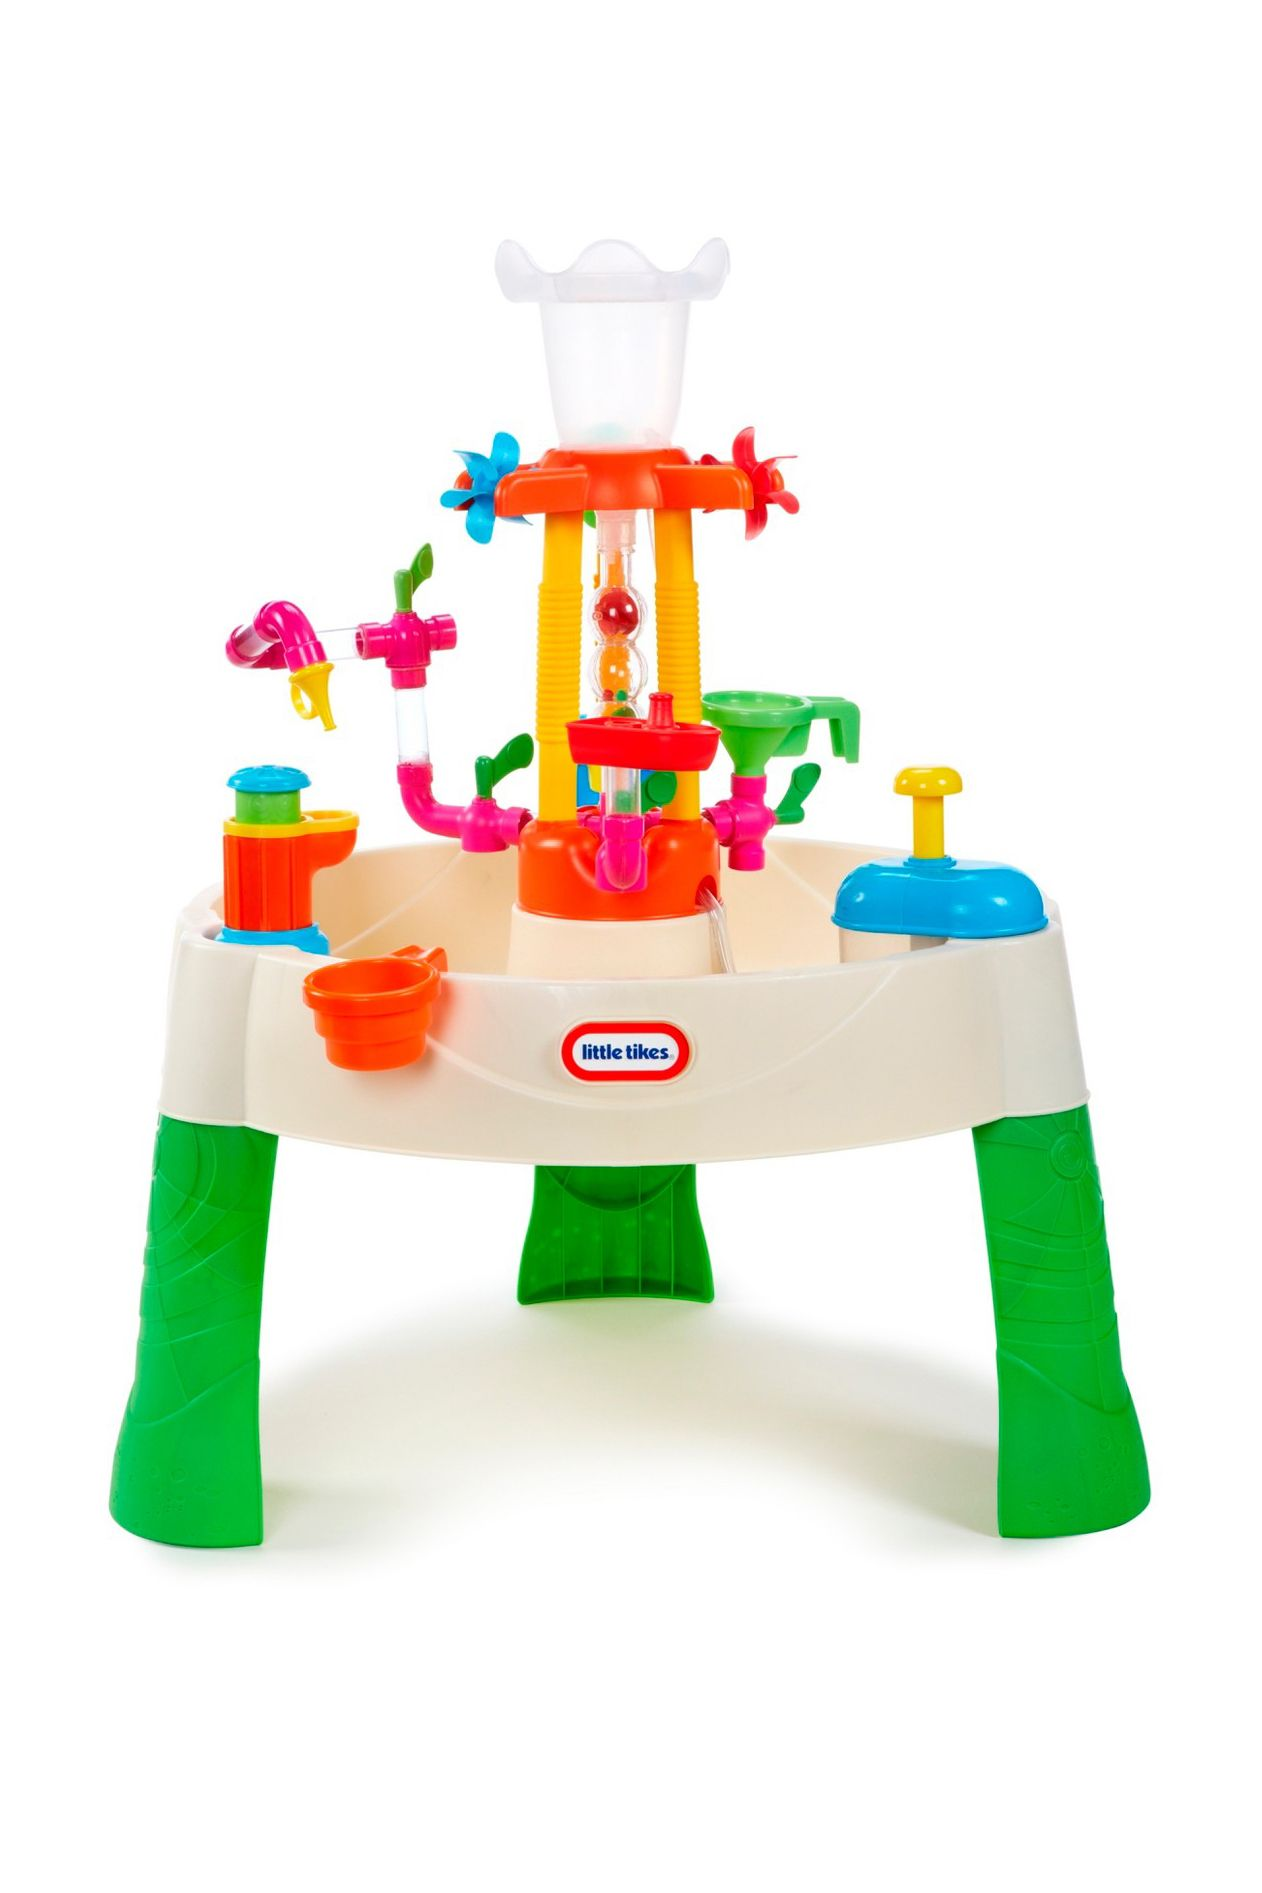 The Best Outdoor Toys for Kids - Top Rate Toys for Outside